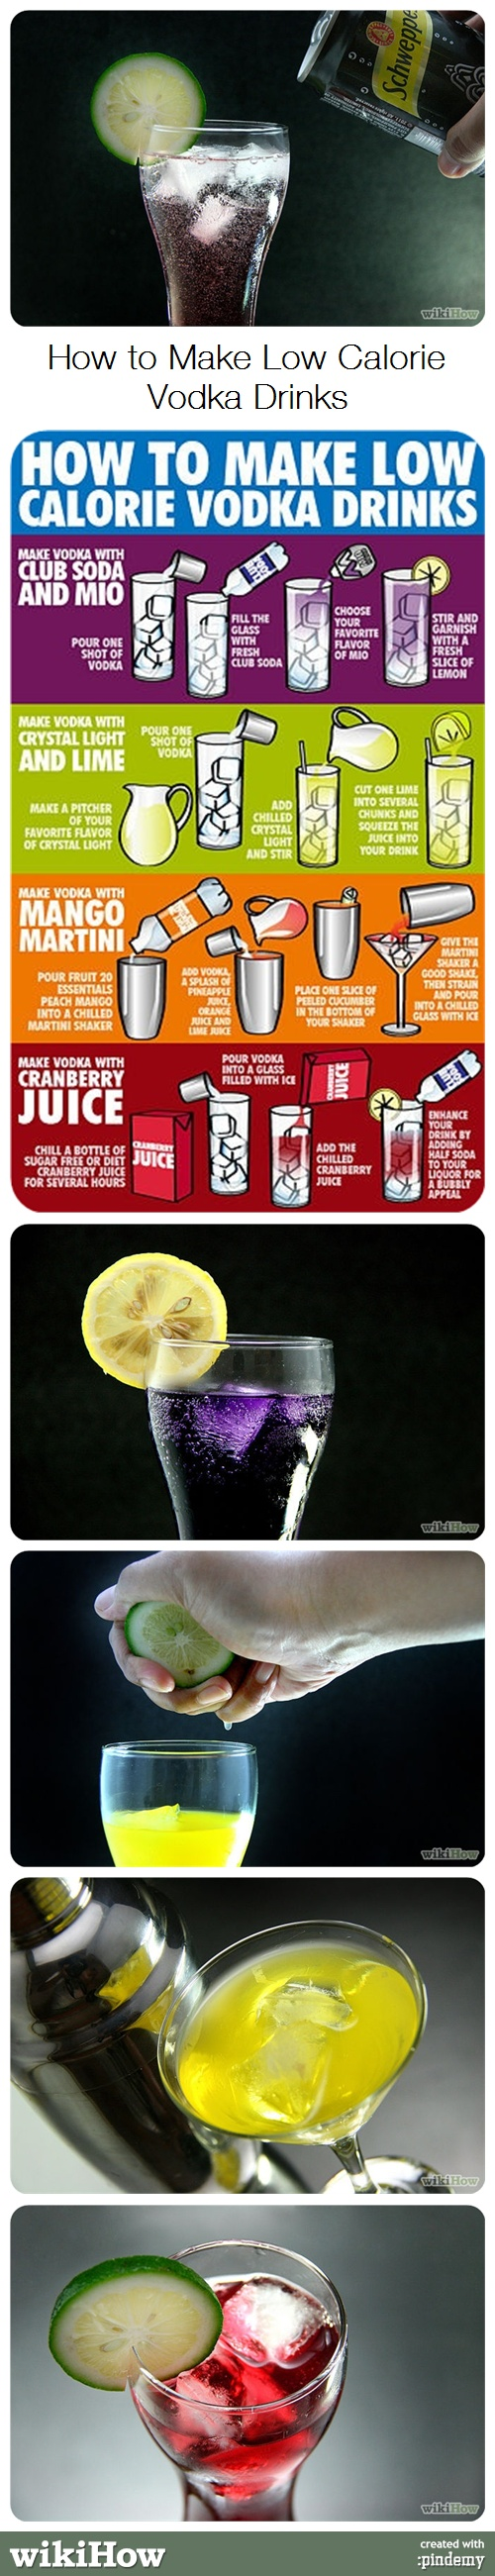 how to make vodka drinks